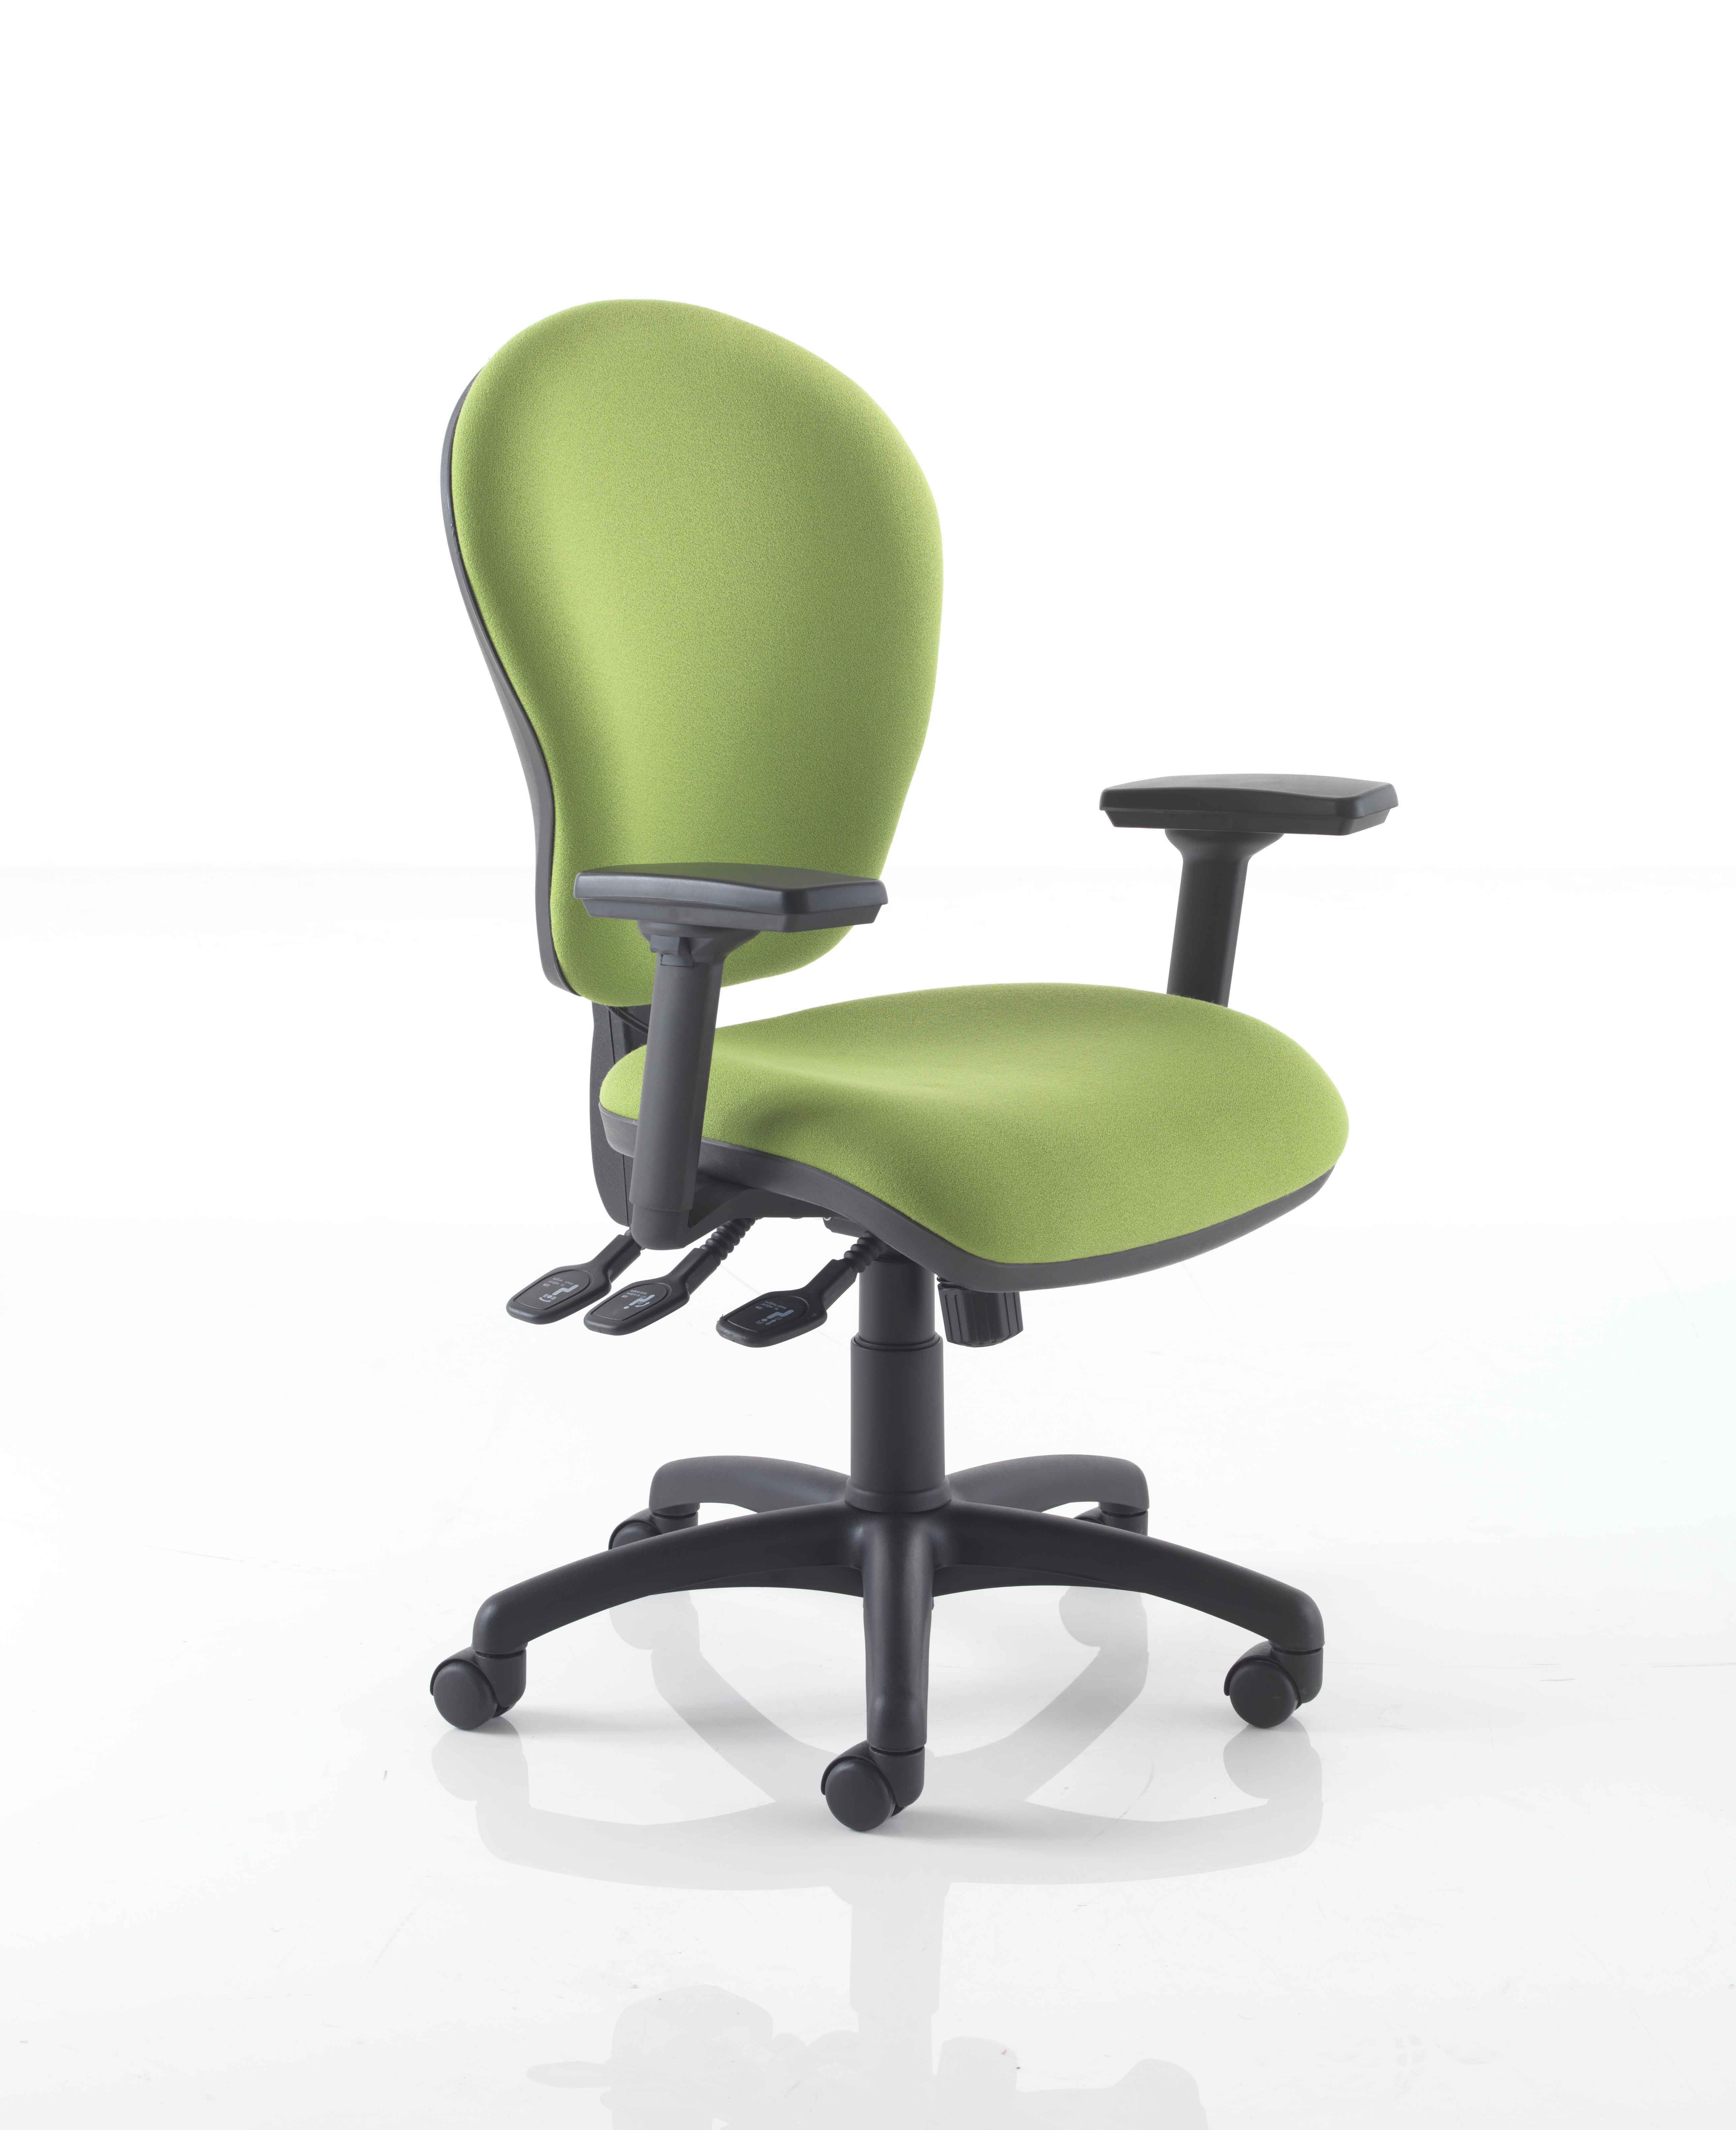 Office Furniture, Chairs, Supplies In Dublin